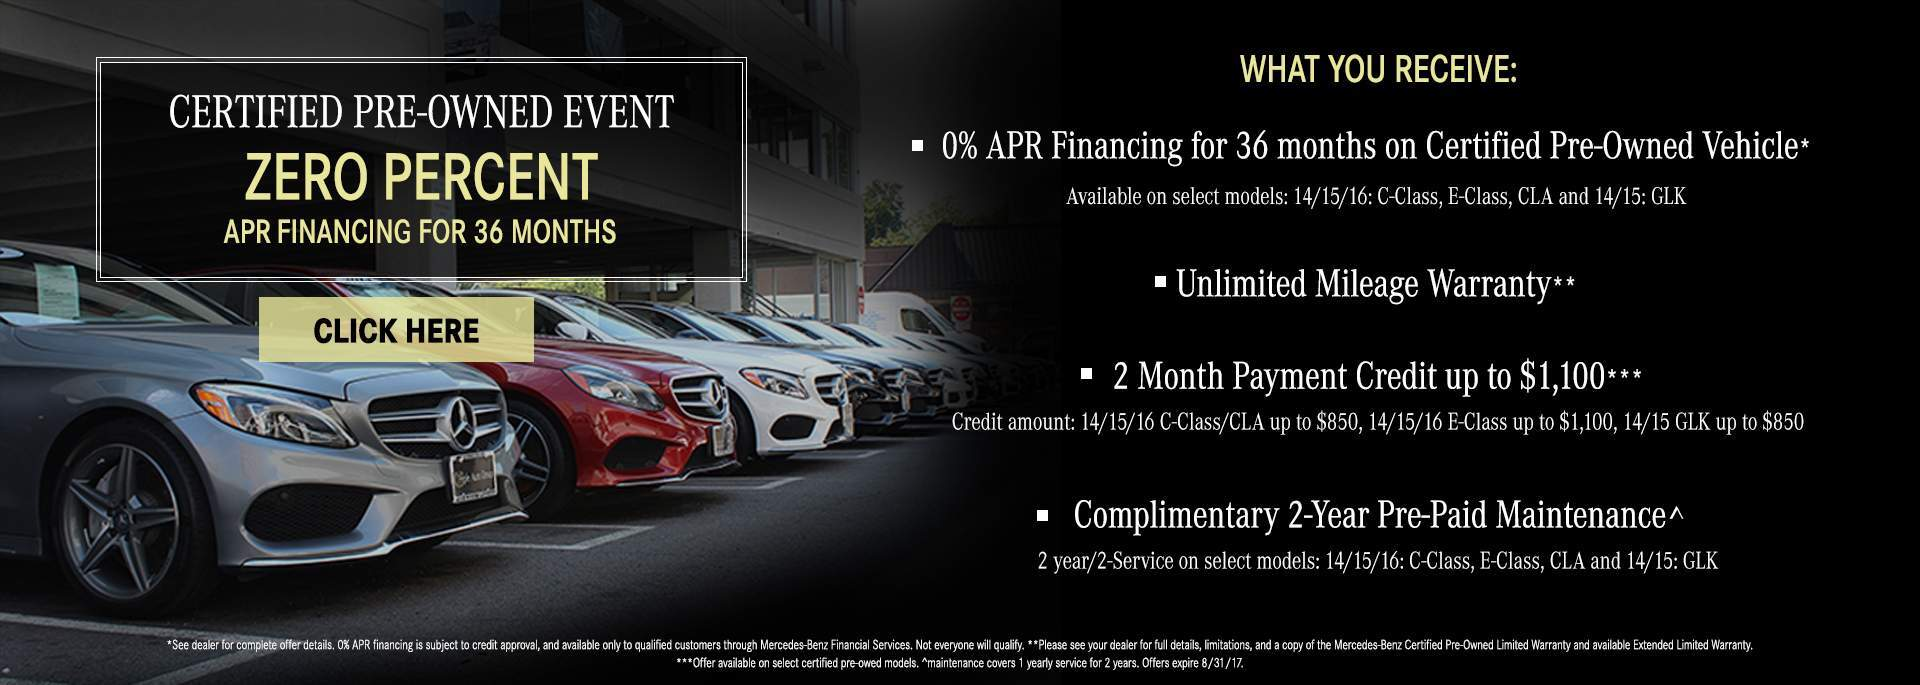 APR Financing CPO